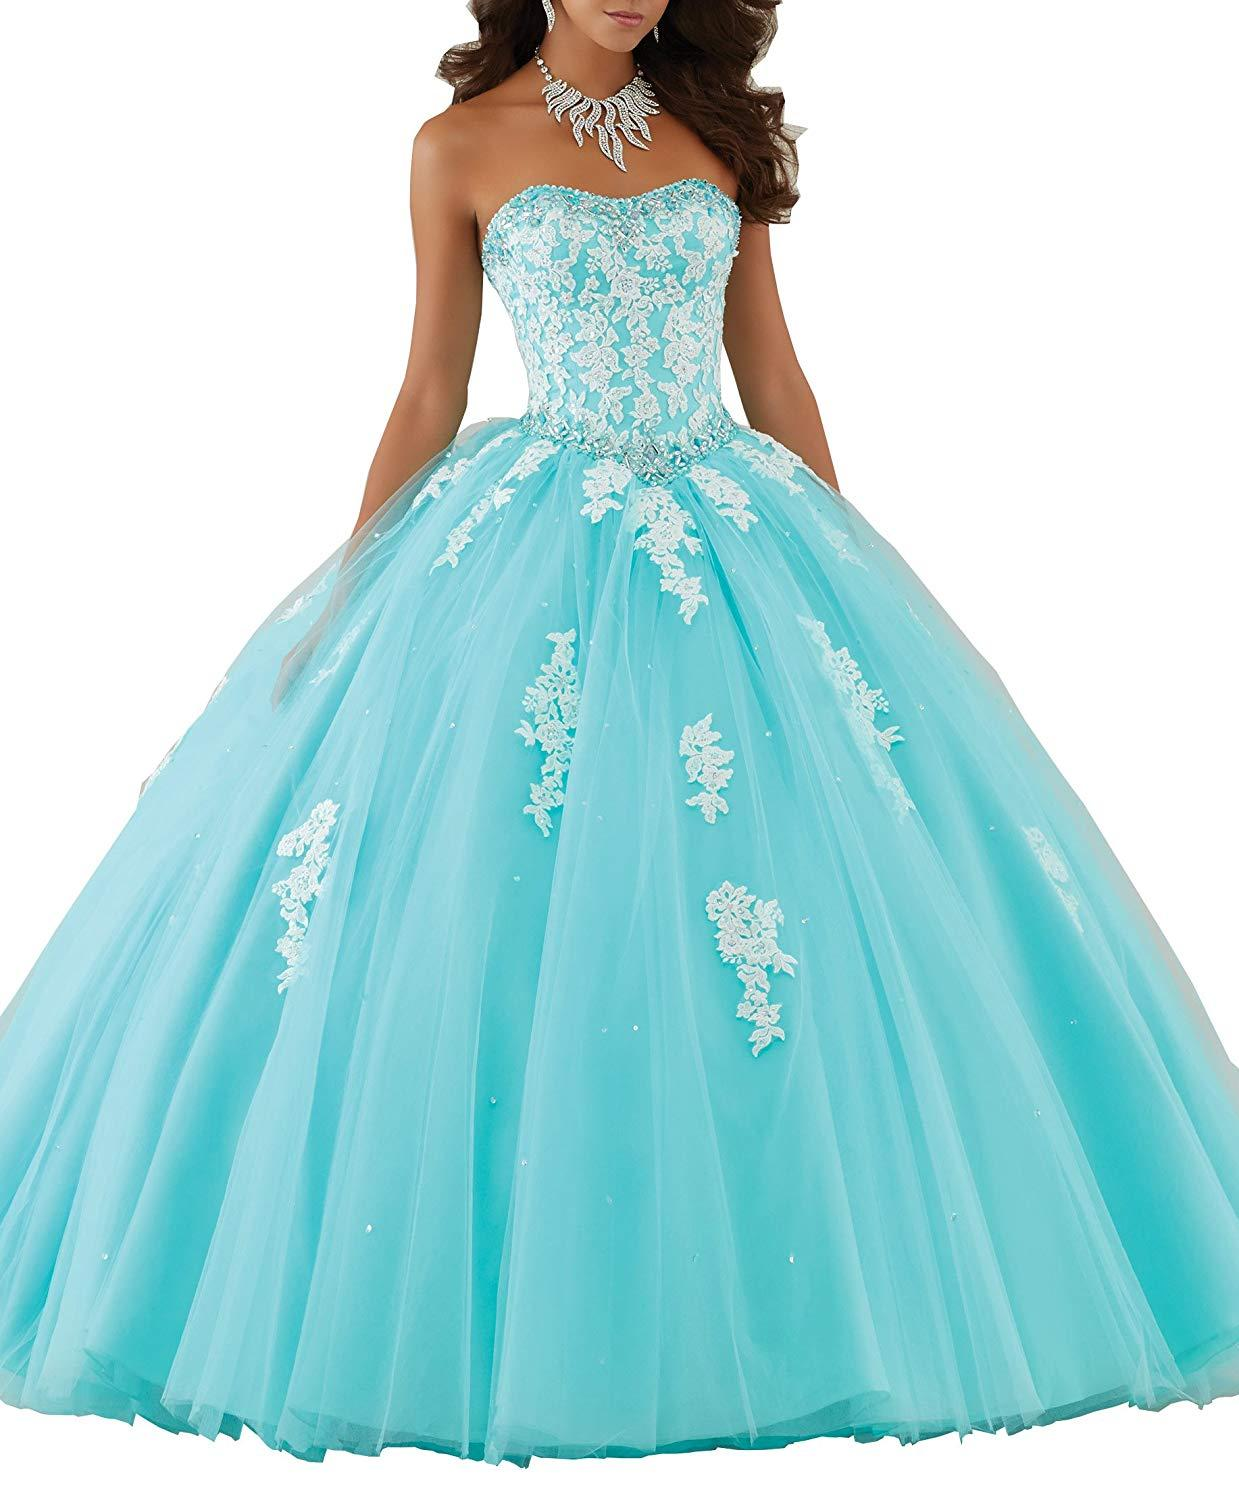 US $137.7 15% OFF|Brinkina Plus Size Girls Dresses 15 Years Ball Gown Aqua  Puffy Tulle White Lace with Crystals Quinceanera Dresses 2019-in ...